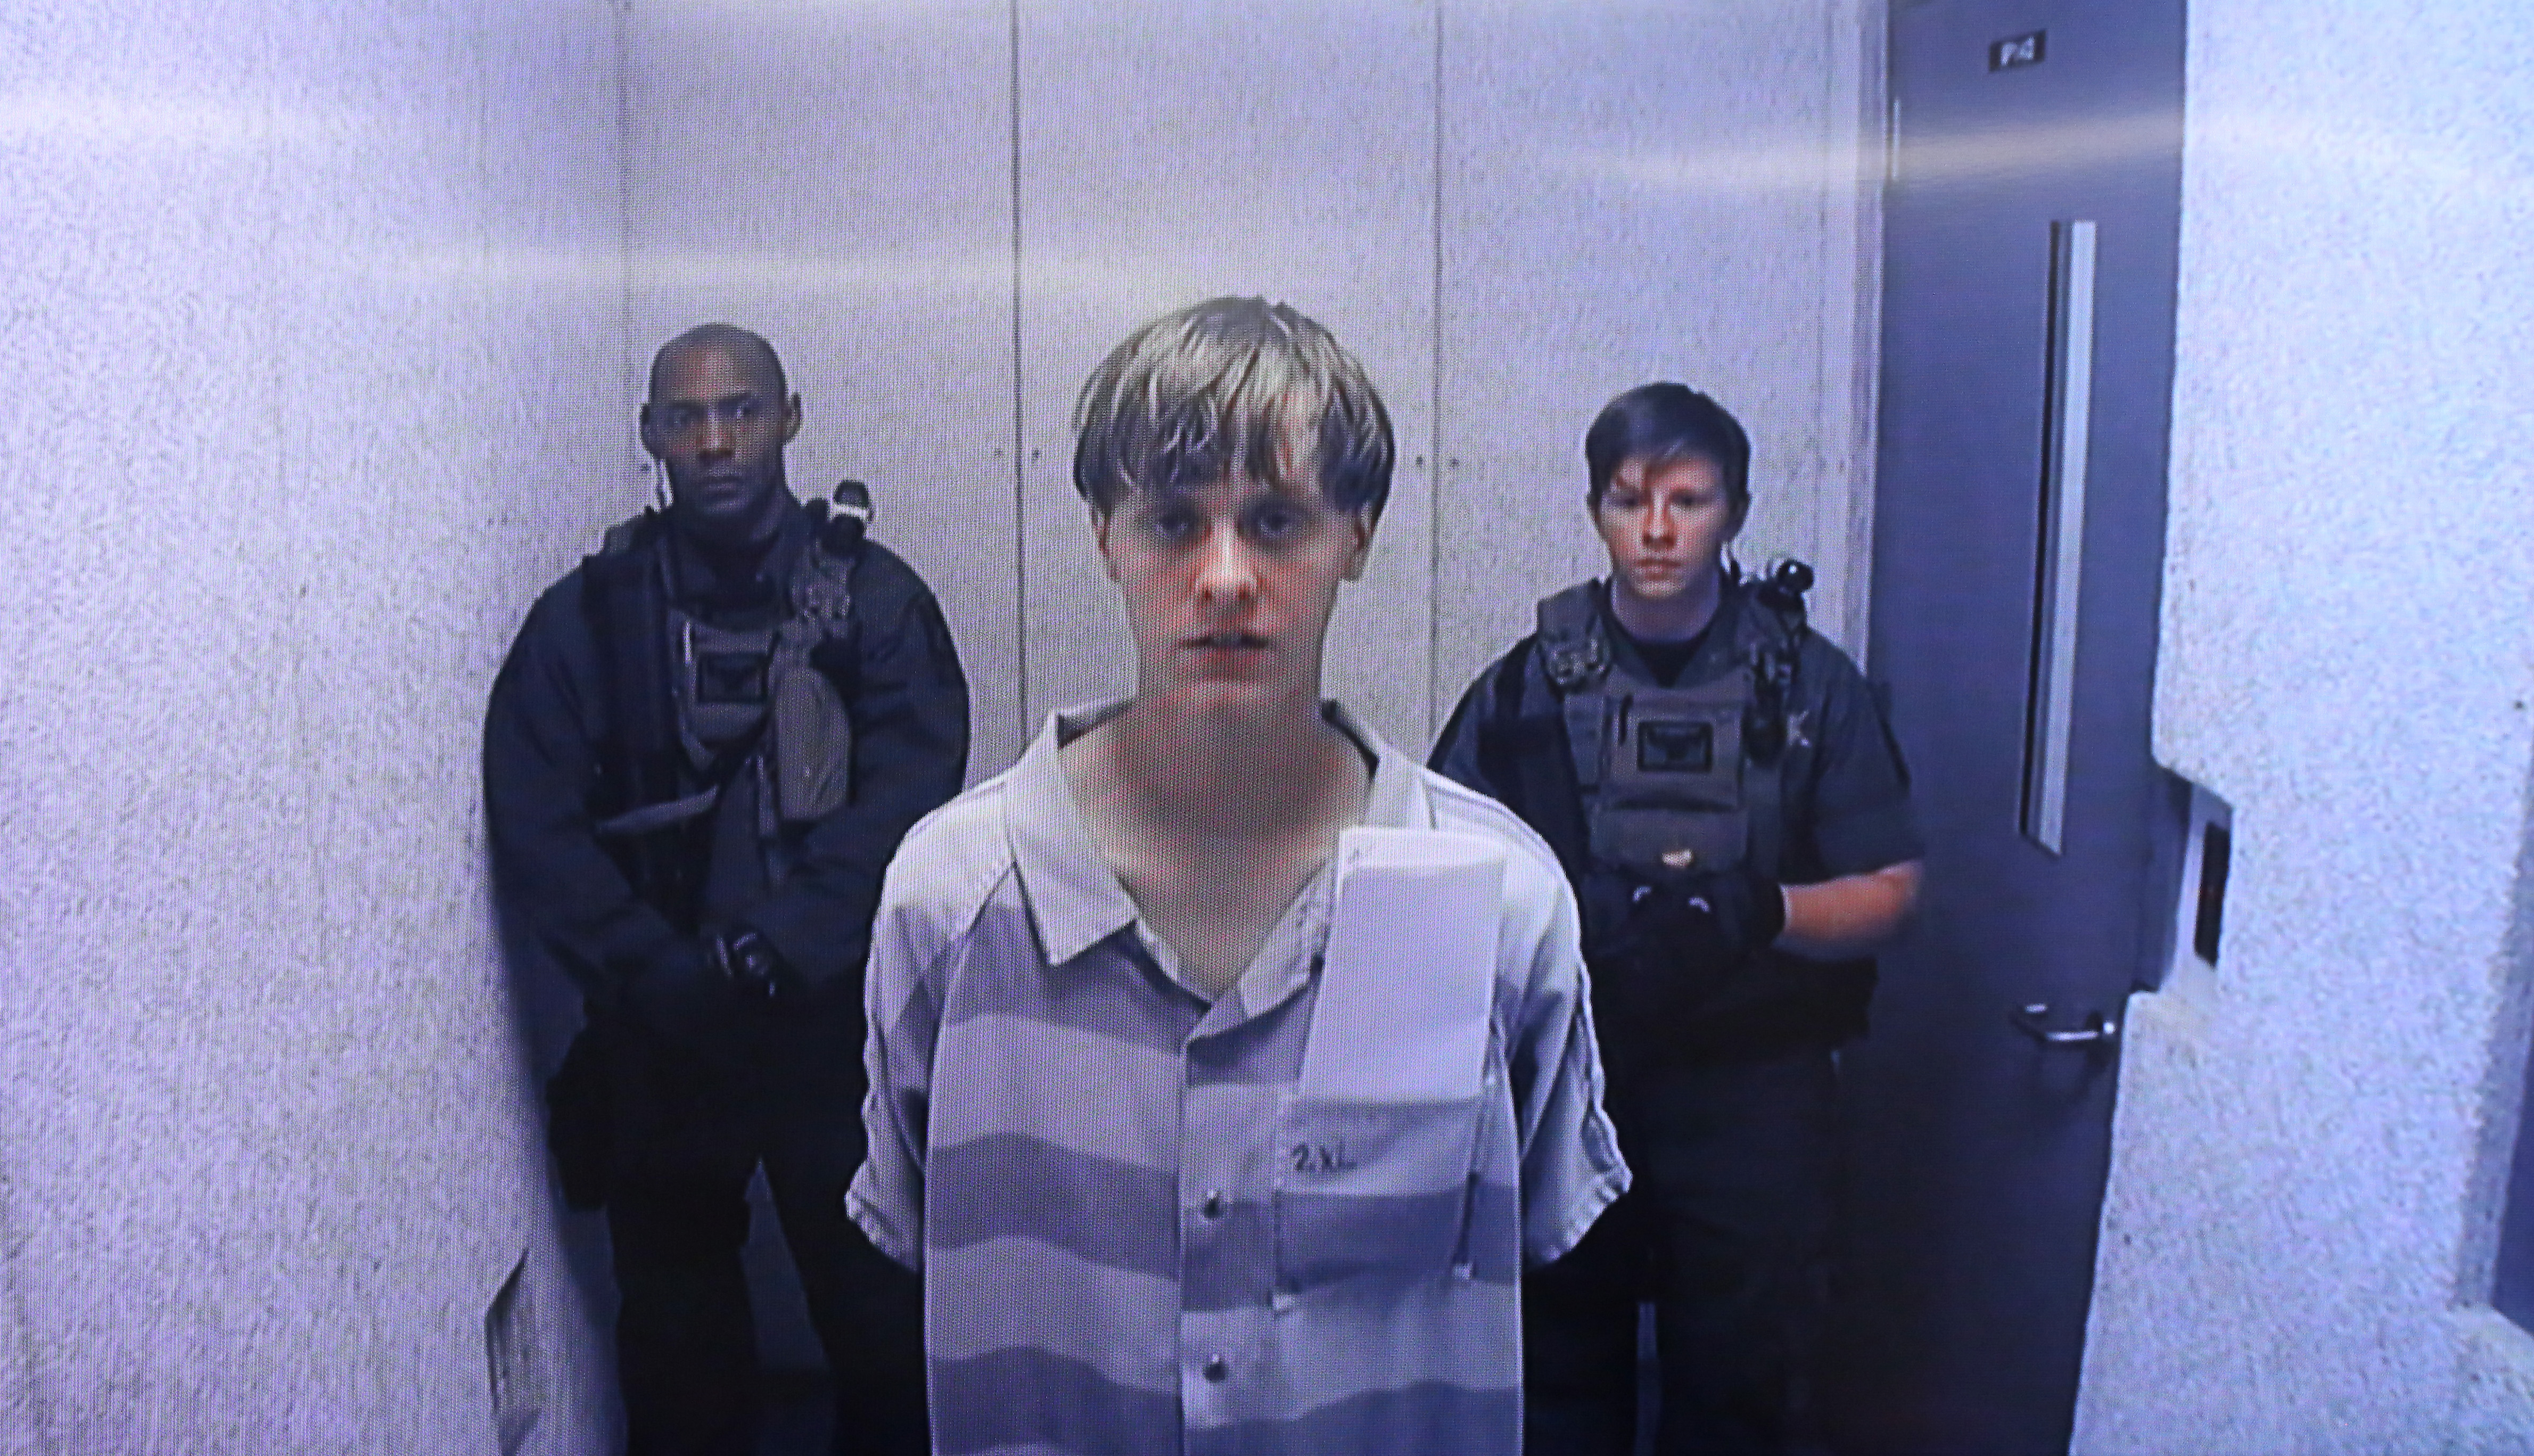 An image from the video uplink from the detention center to the courtroom, Dylann Roof appears at Centralized Bond Hearing Court in North Charleston, South Carolina, on June 19, 2015.